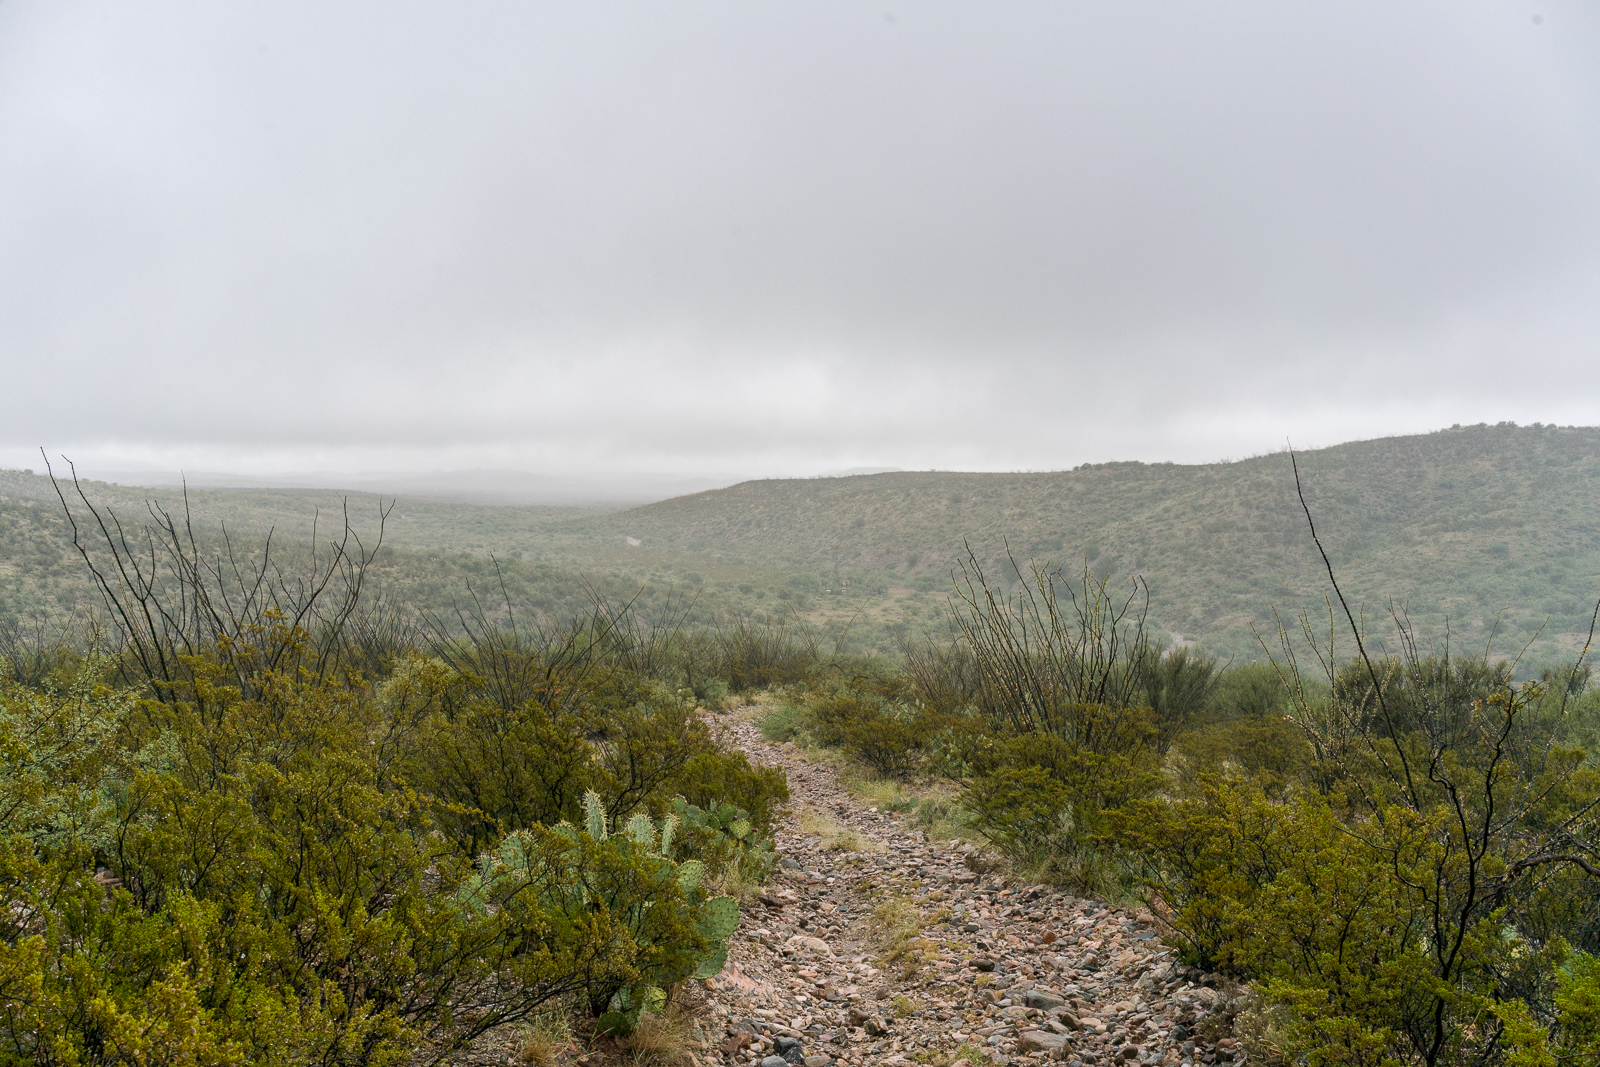 The road across the Mesa descends towards Mesa Well and off into the clouds. September 2016.